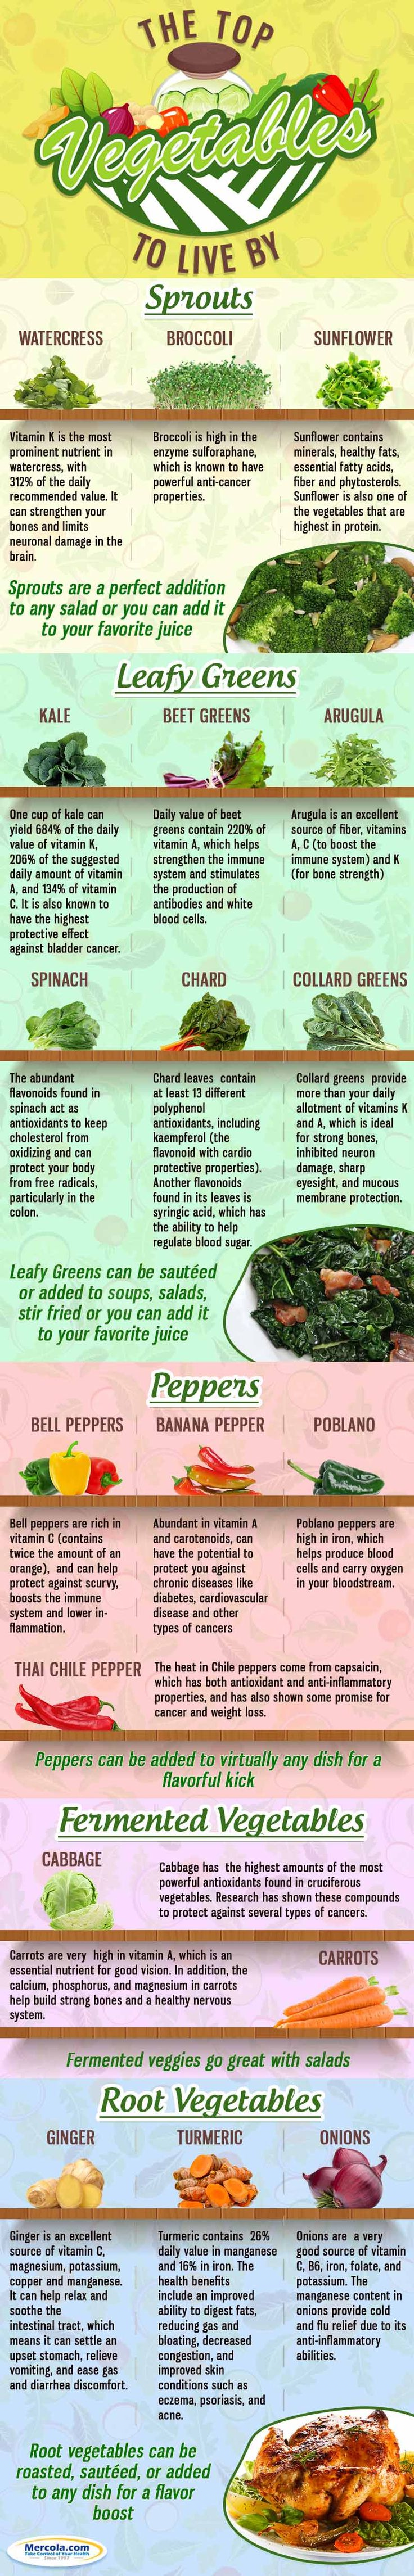 Most vegetables are very low in calories and net carbs, while being high in healthy fiber and the valuable vitamins and minerals your body needs for optimal health.